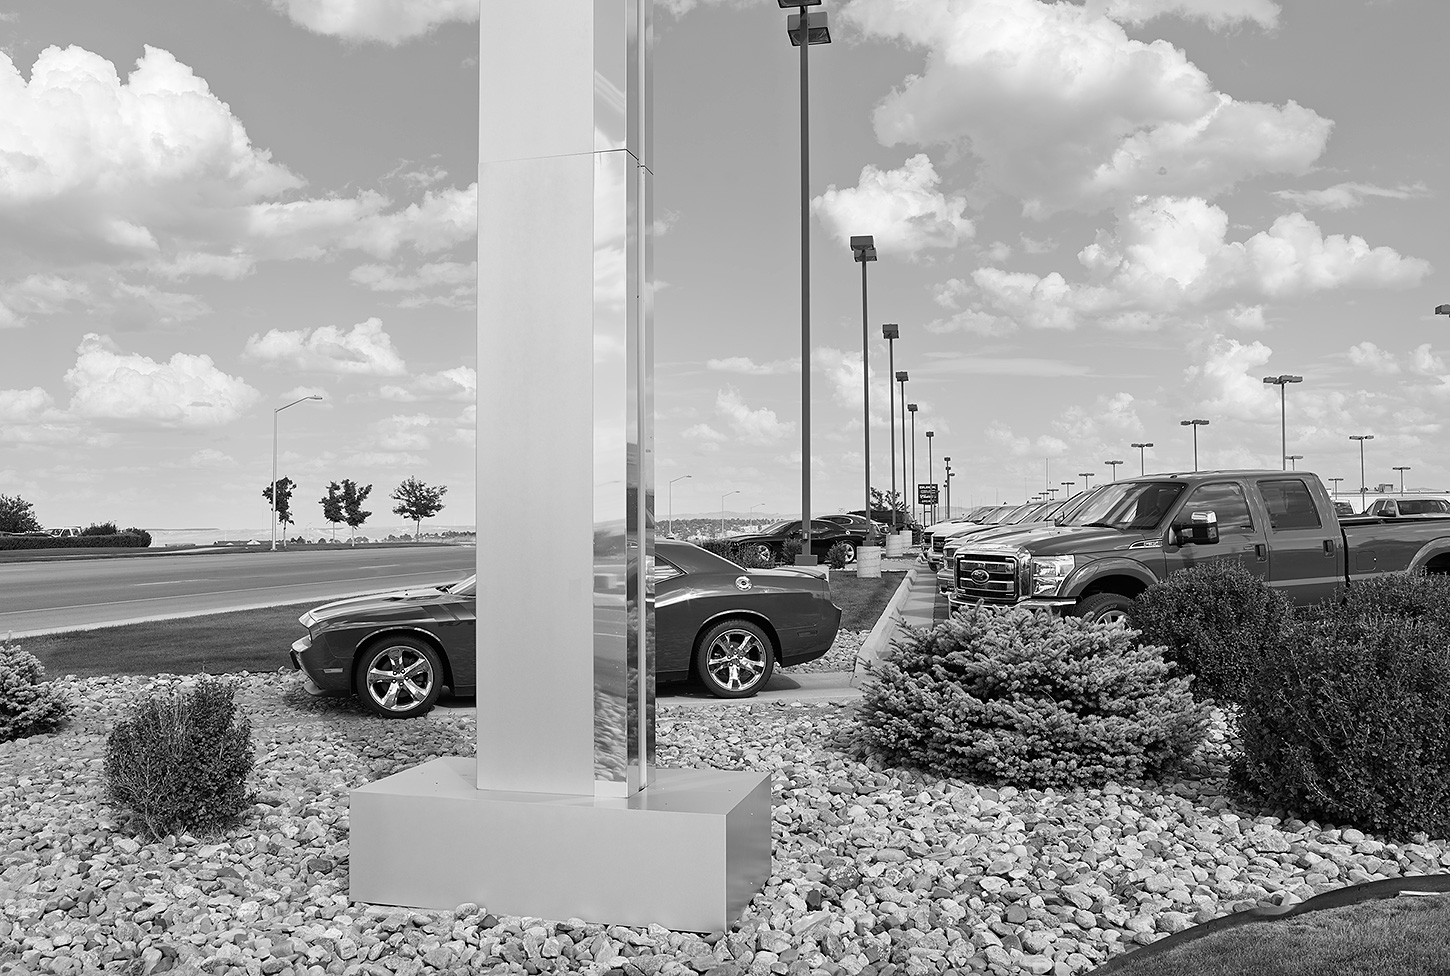 The Retail Landscape A Photography Project By Drew Harty